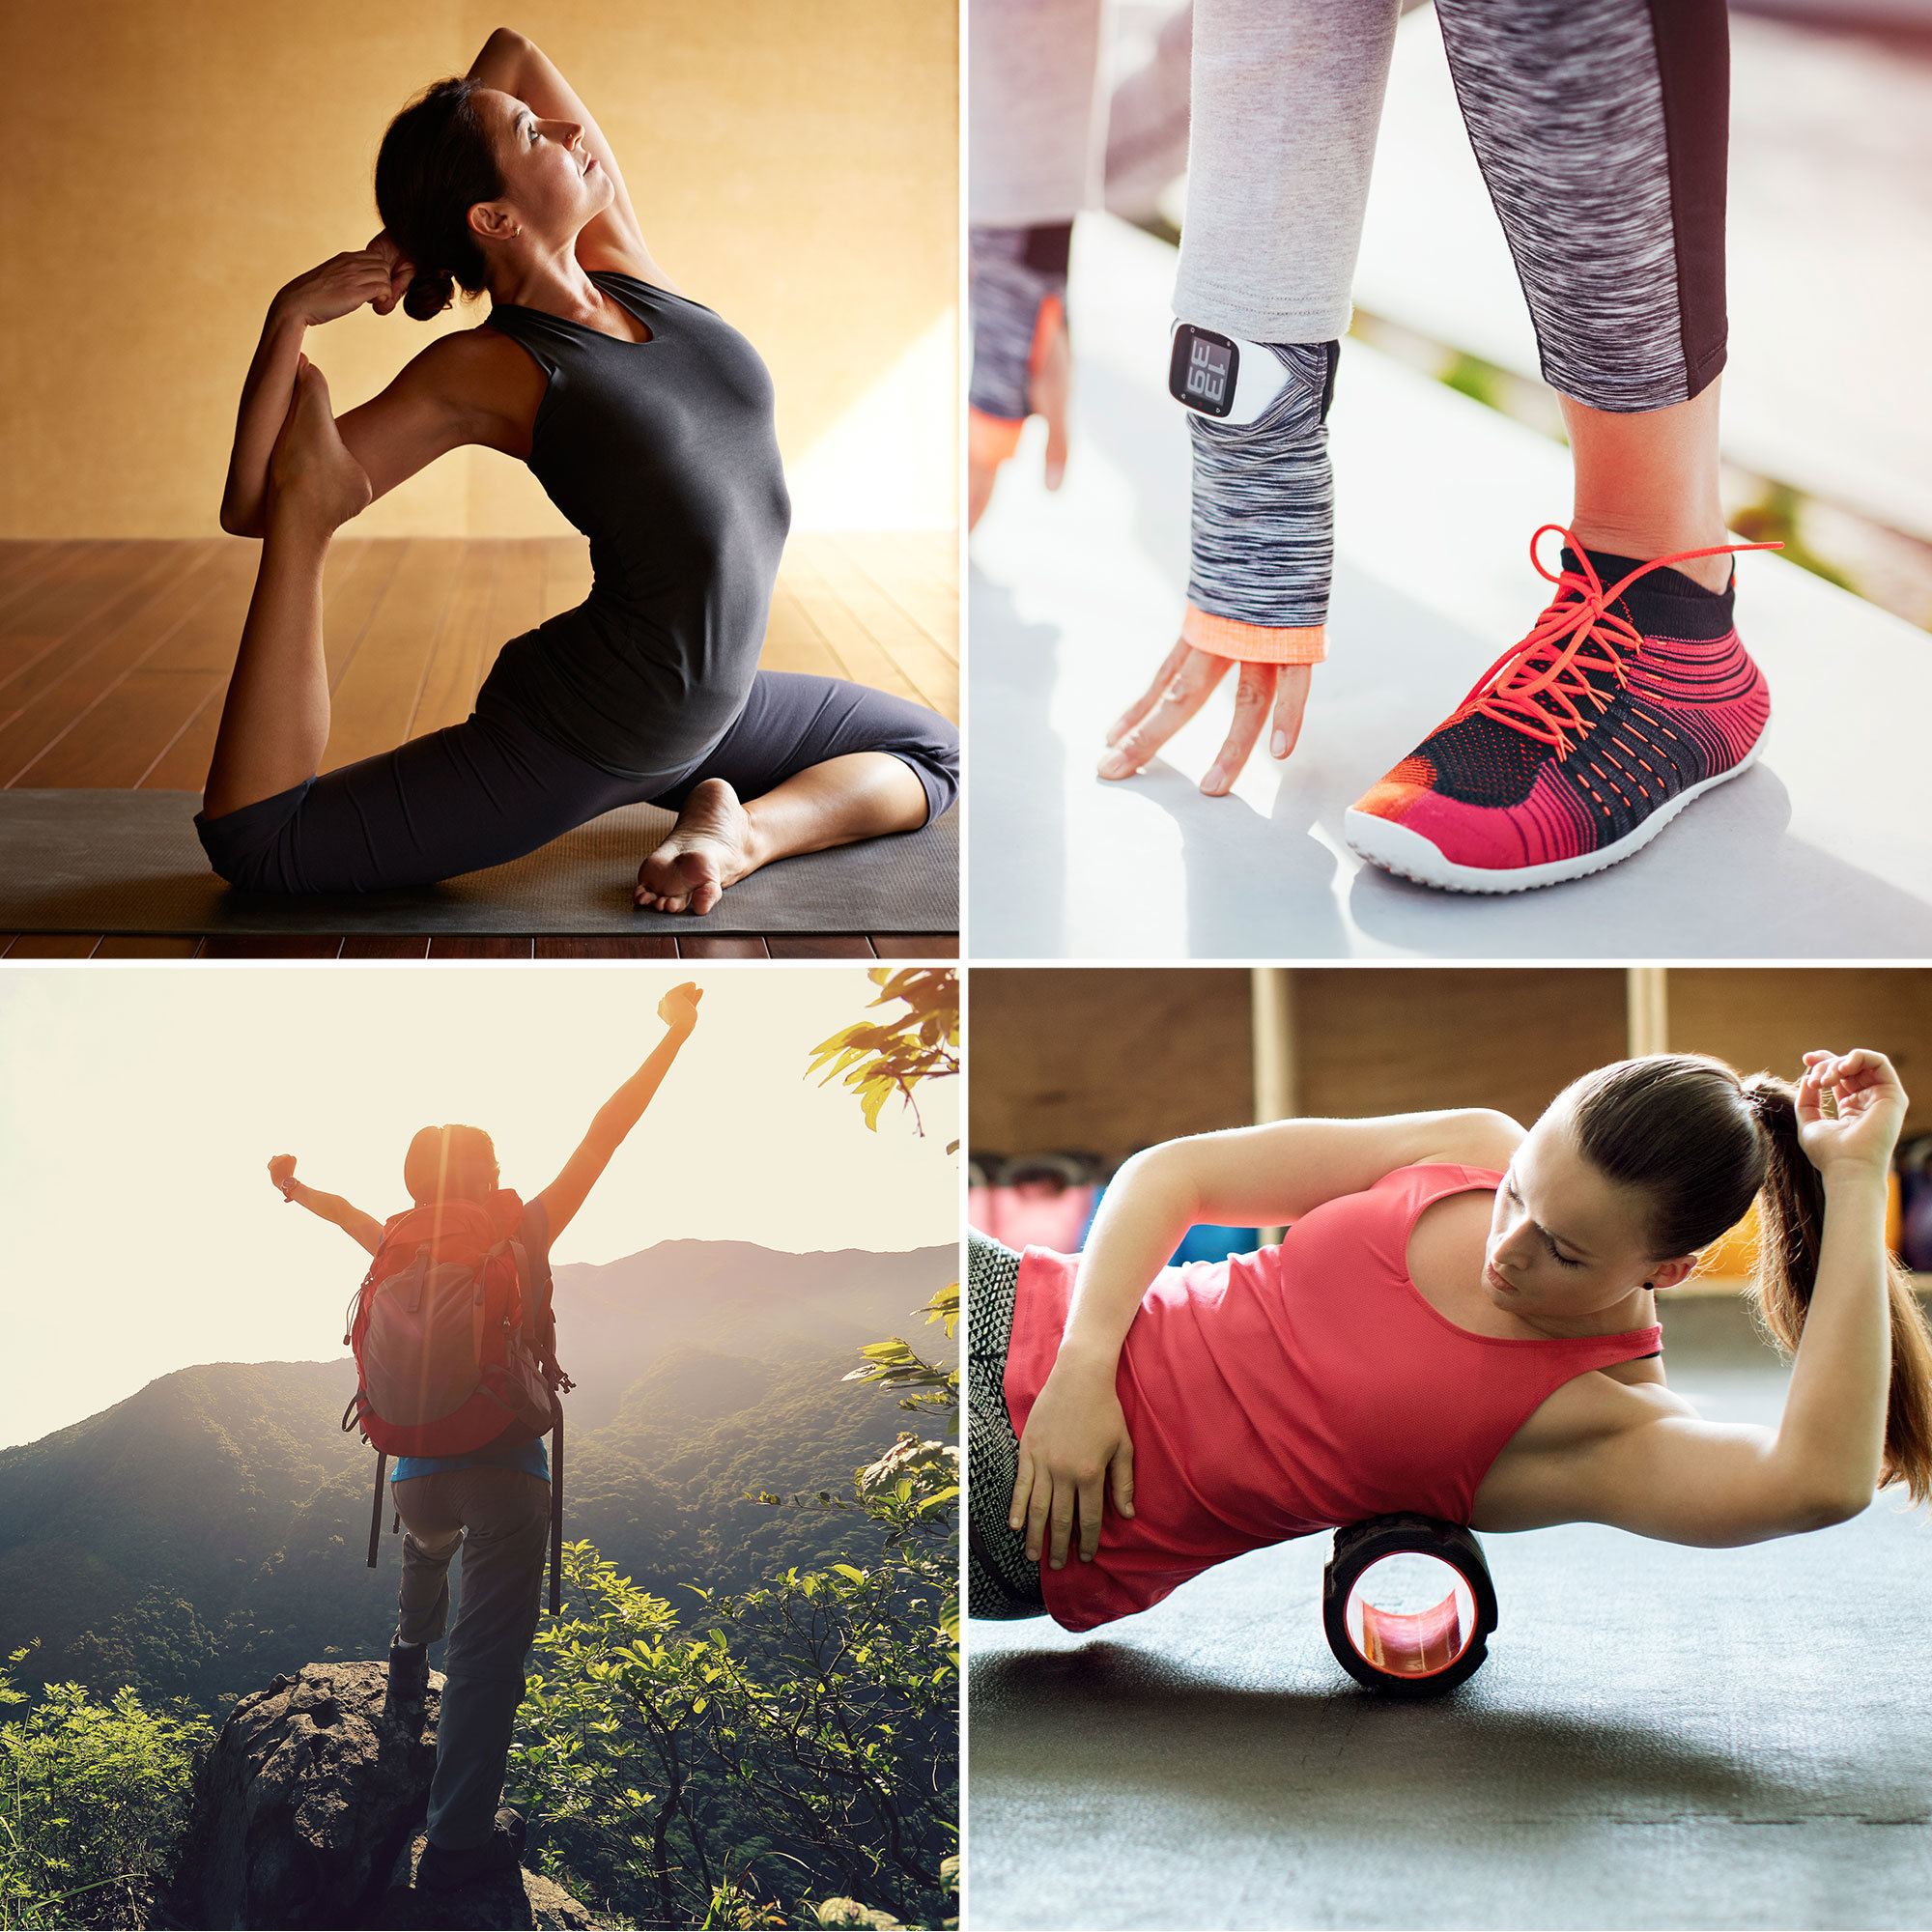 Health And Fitness: 2017's Biggest Fitness Trends